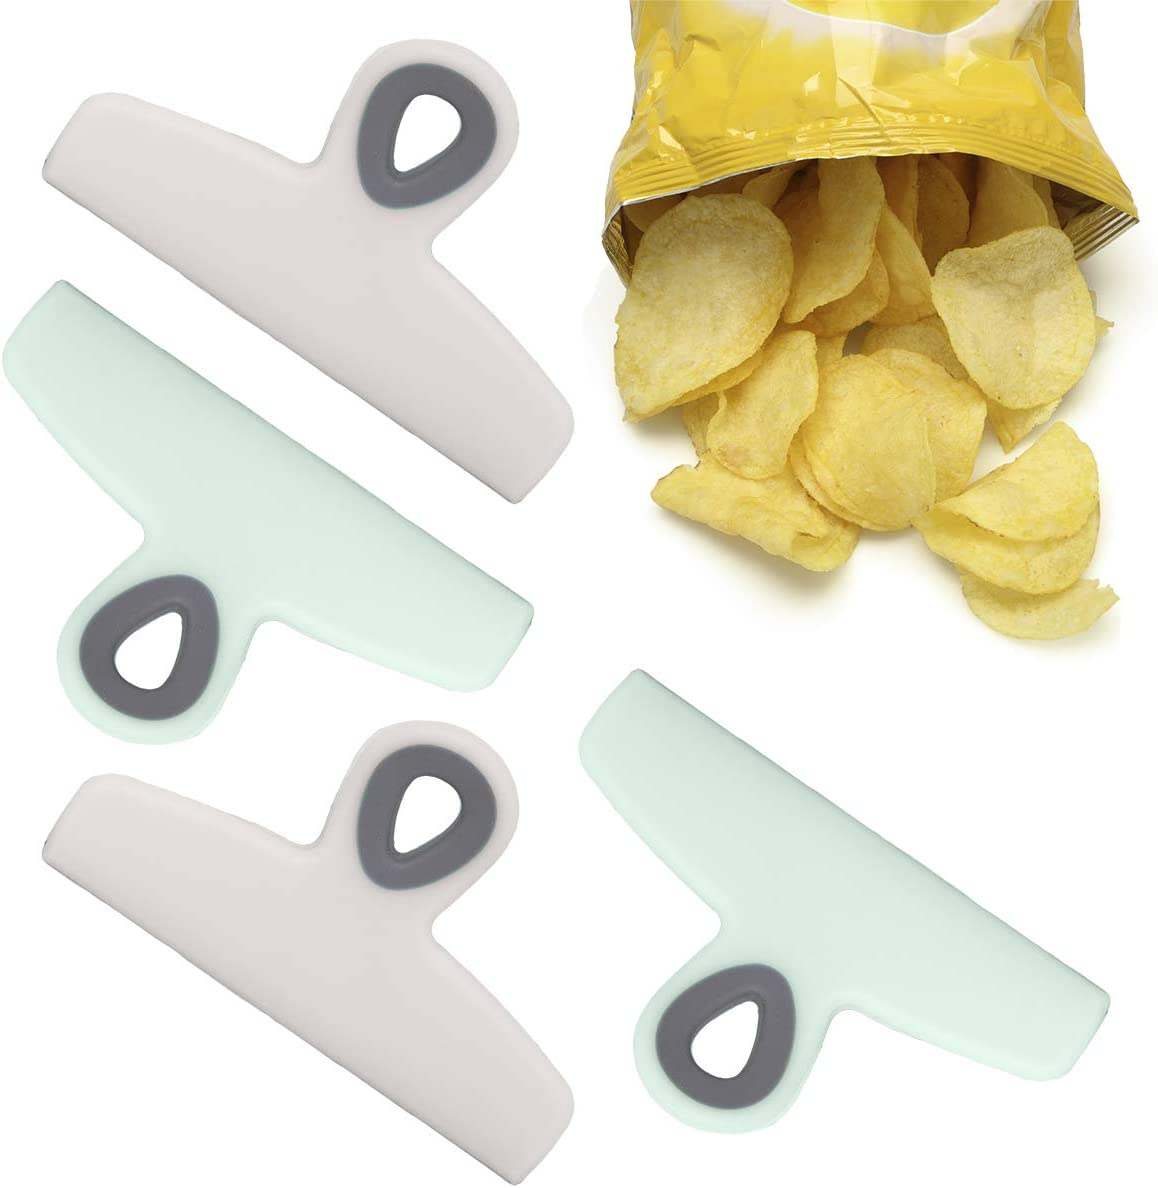 Cook With Color Bag Clips, 4 Large Heavy Duty Chip Clips for Food Storage with Air Tight Seal Grip for Snack Bags and Food Bags, Jumbo Food Clips (Mint & Grey)